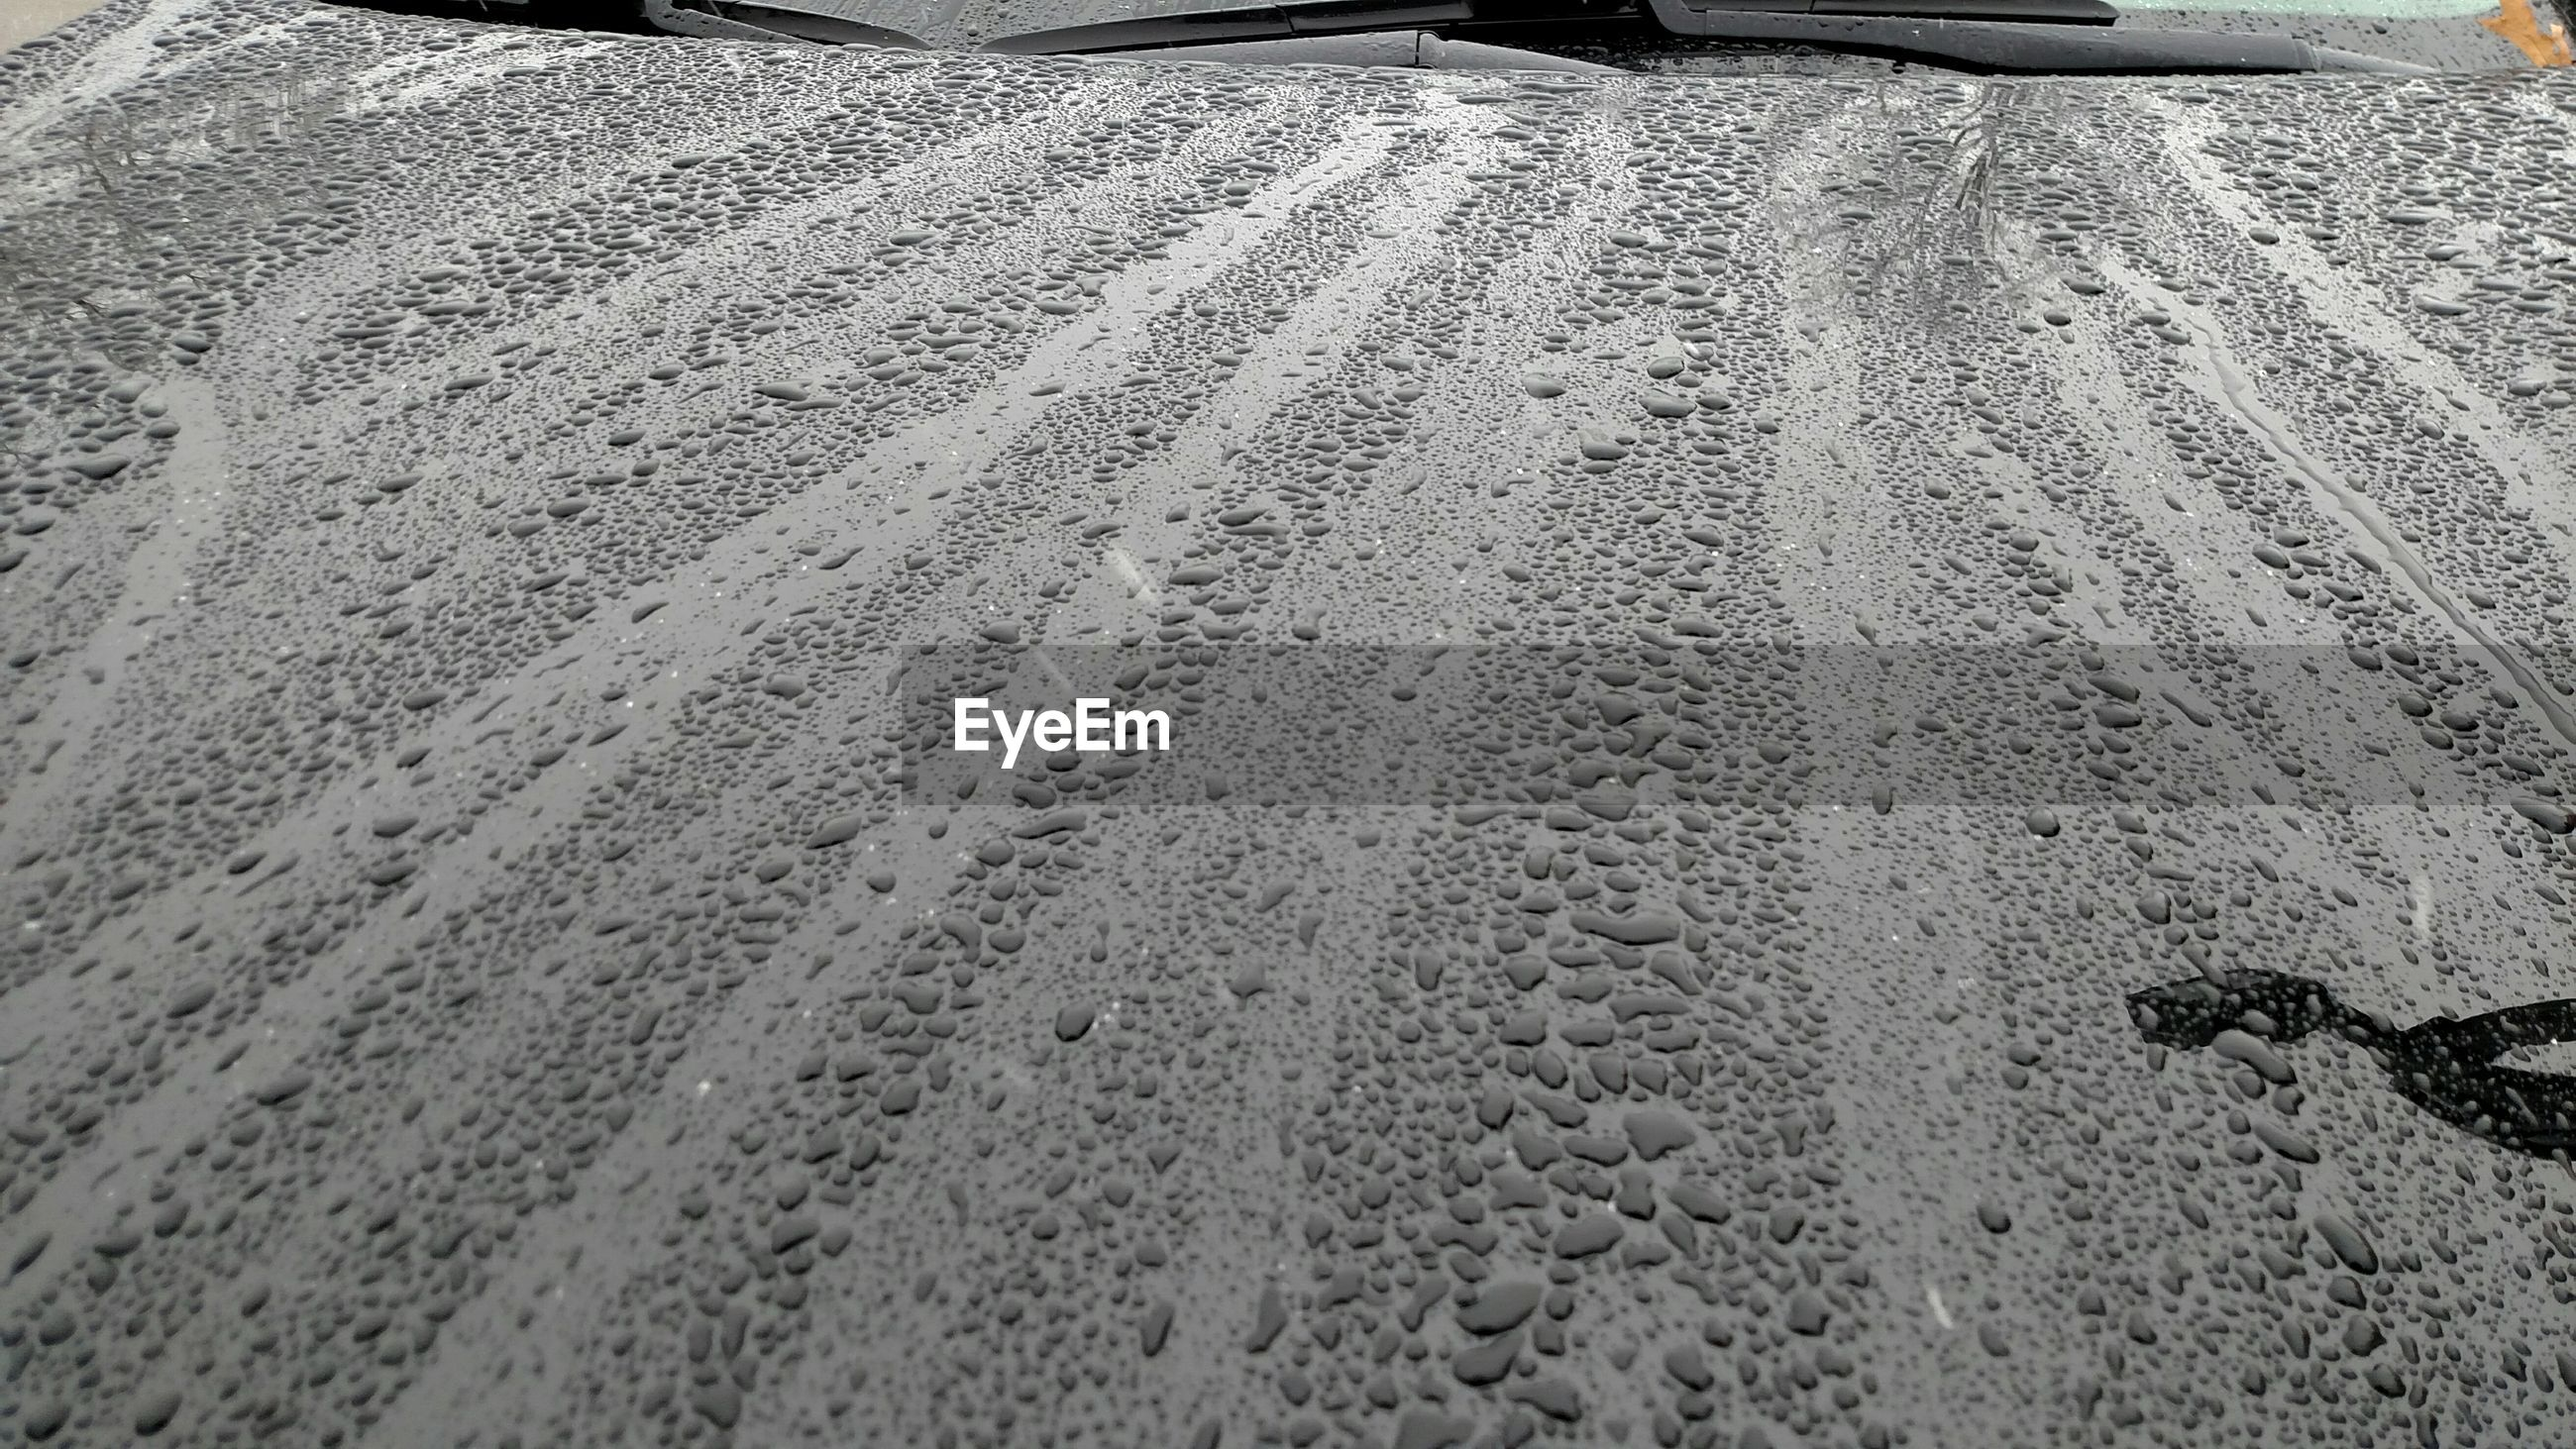 Close-up of water drops on car bonnet